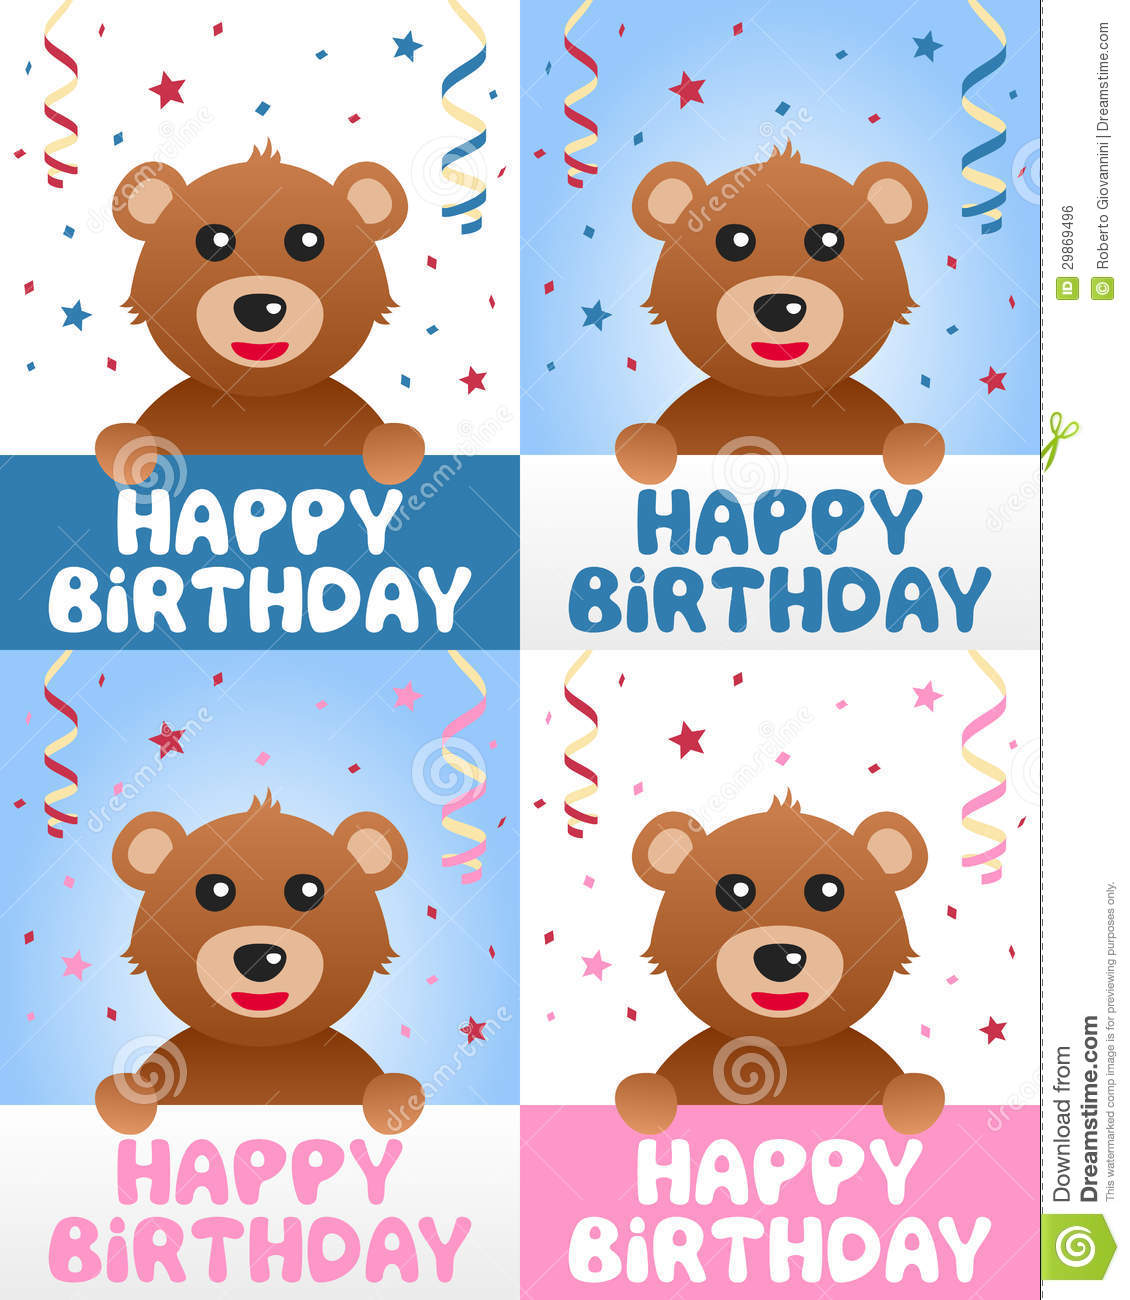 Happy Birthday Teddy Bear Stock Vector Illustration Of Greetings